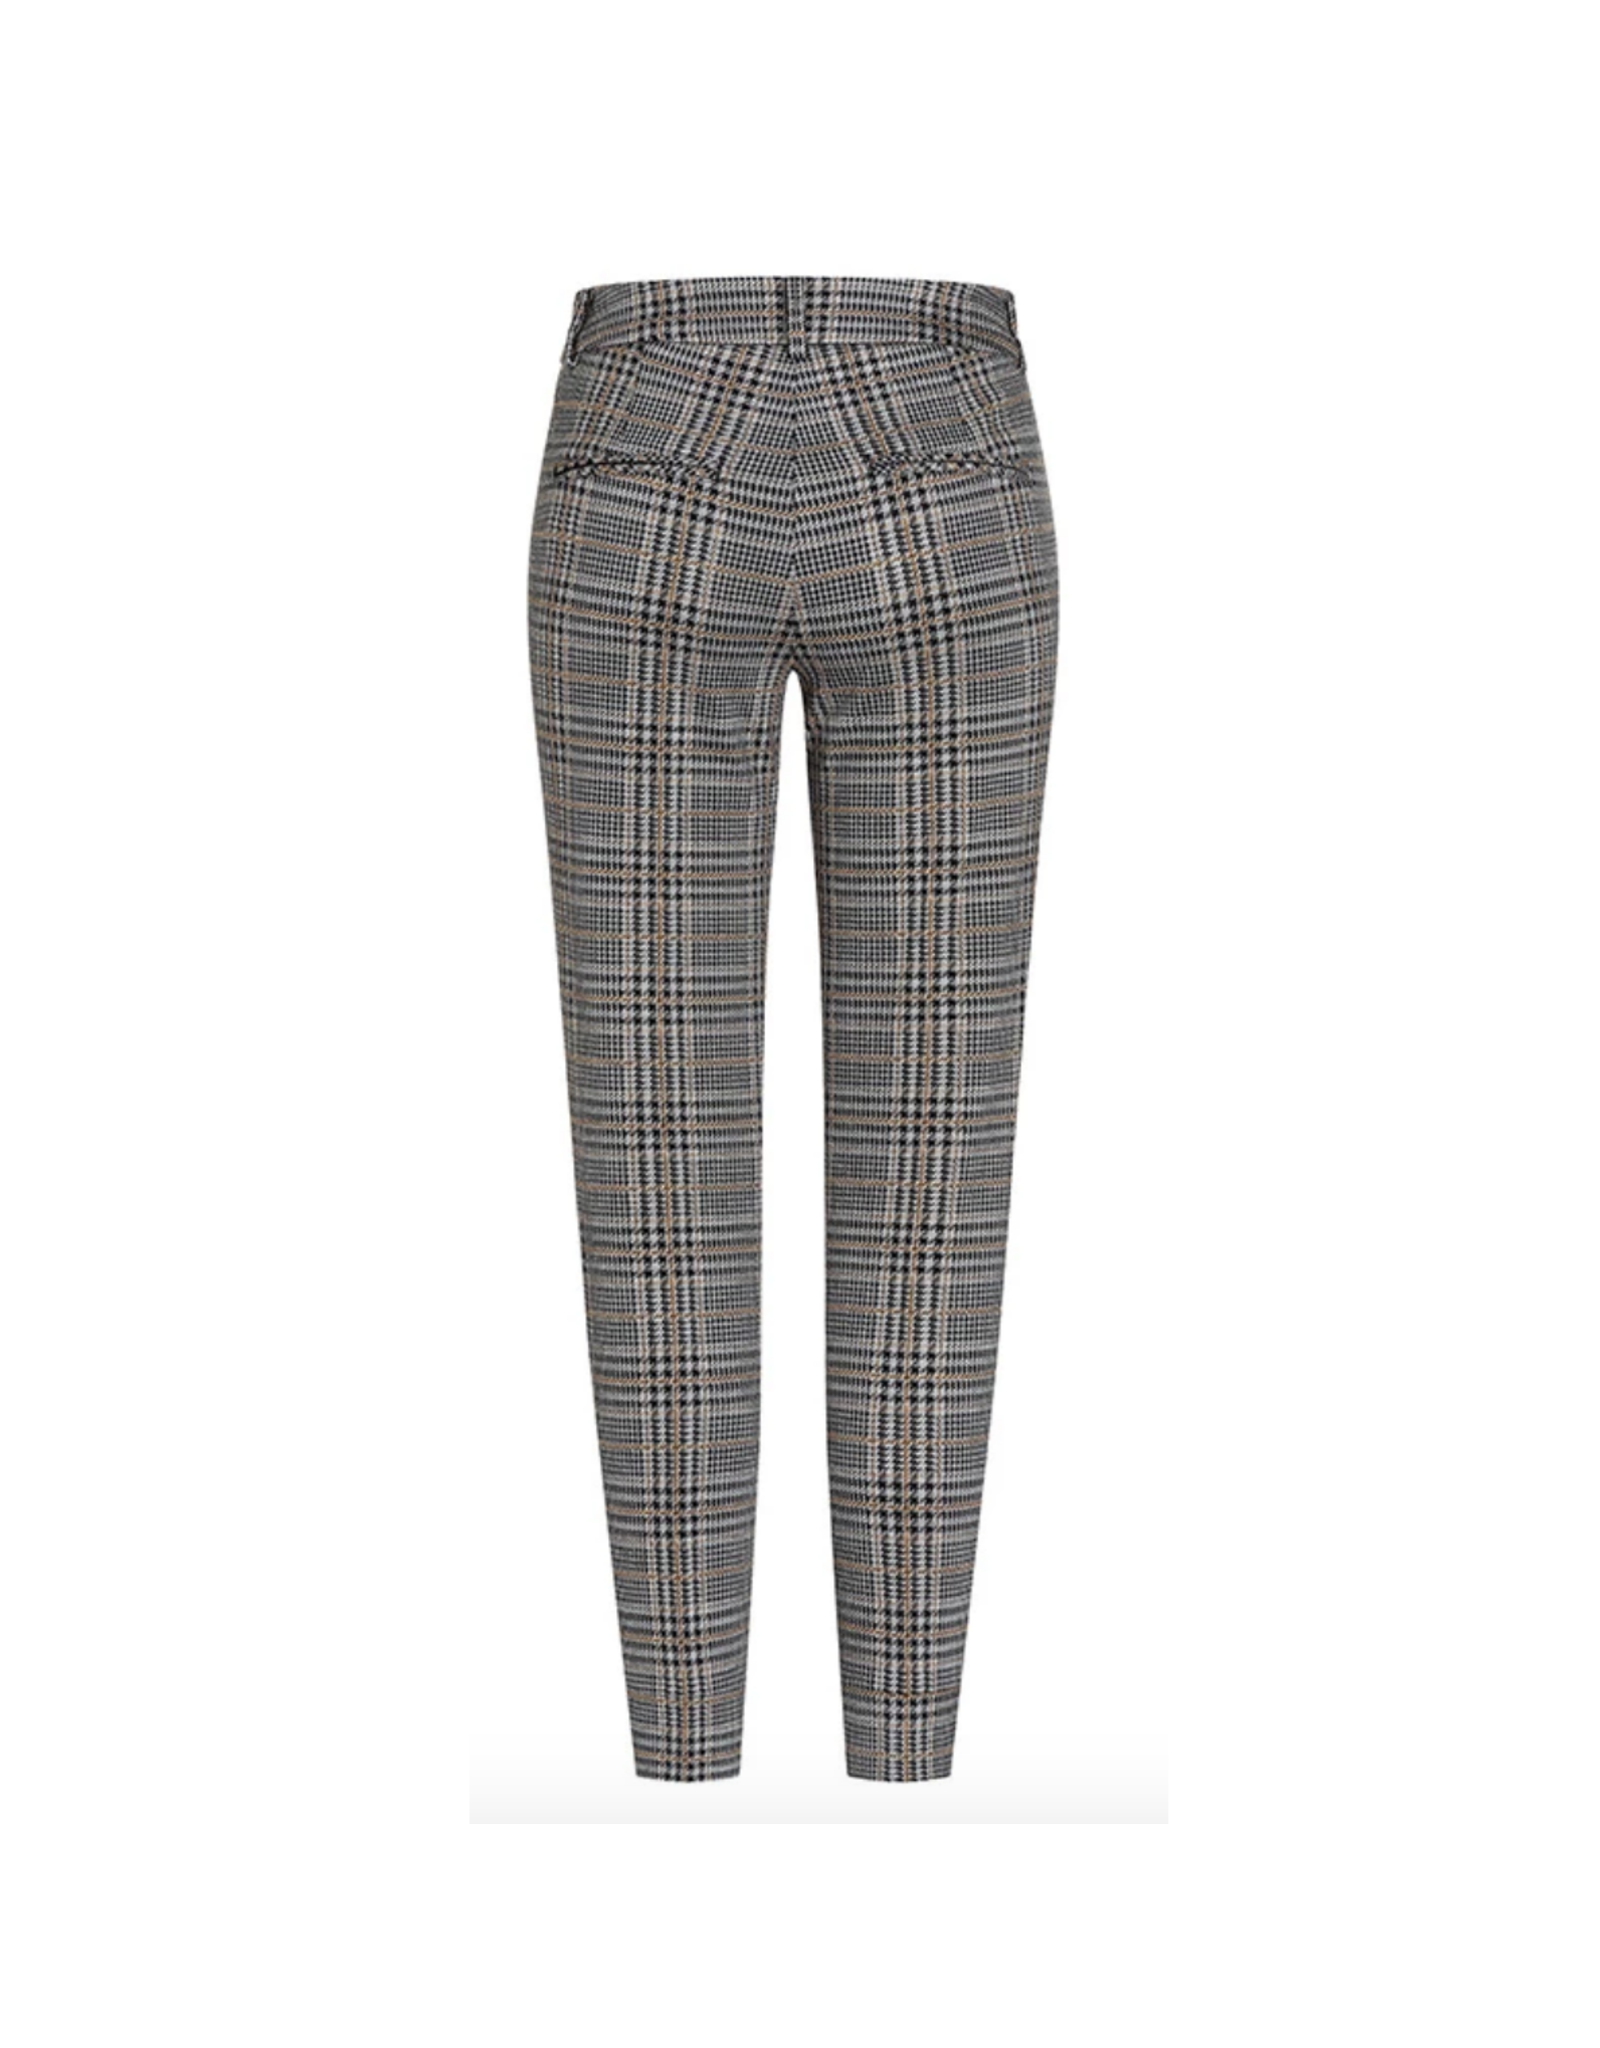 Cambio Cambio Ros Zip Pocket Pants - Houndstooth Print